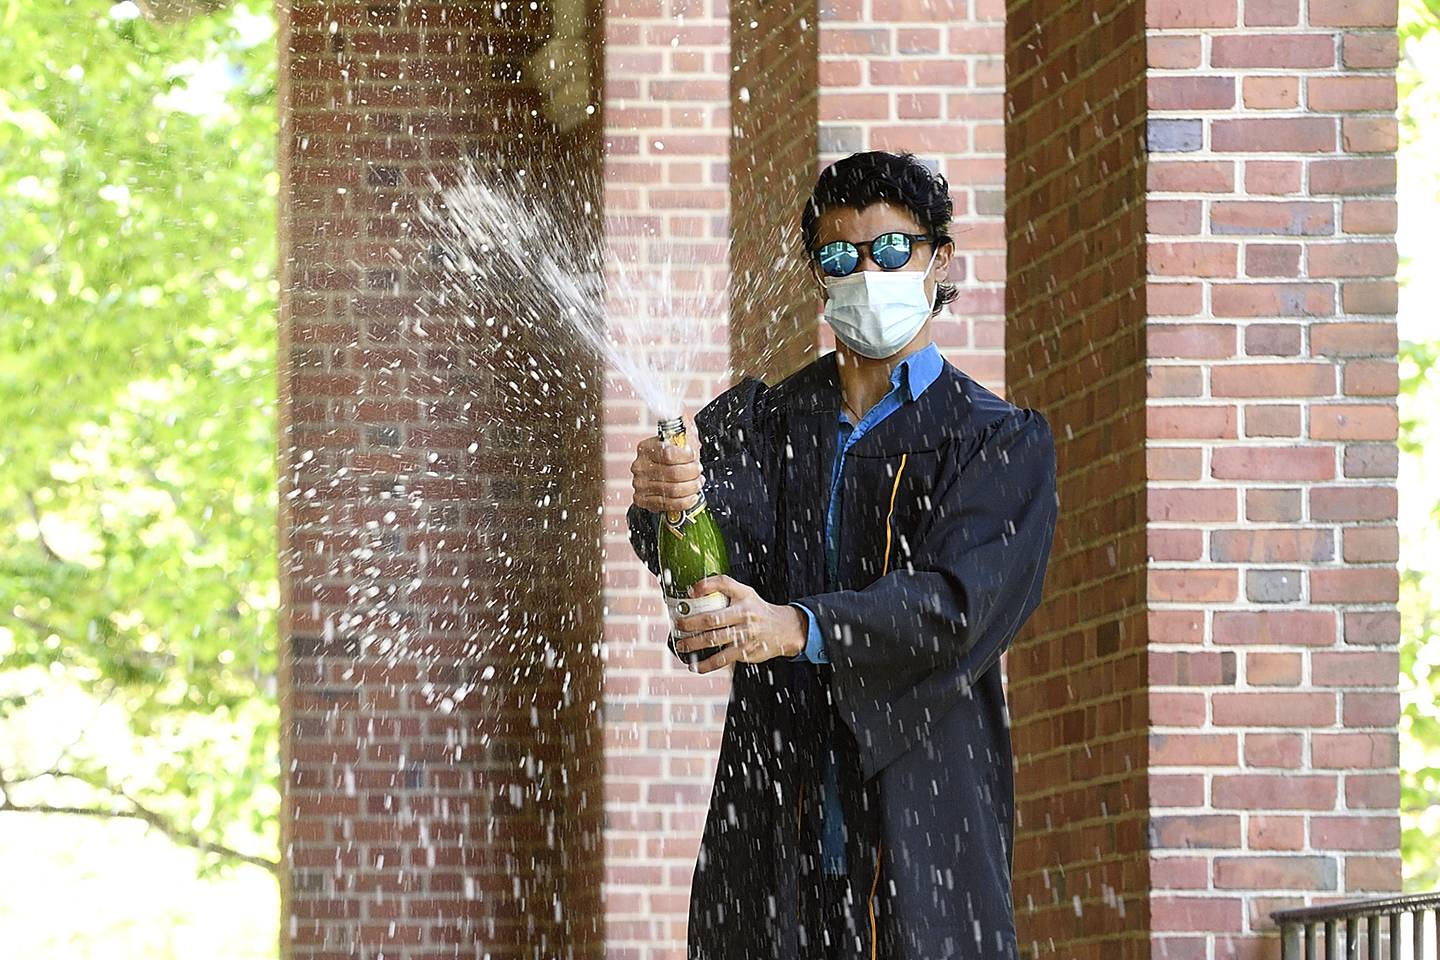 A graduate wears a mask and sprays a bottle of champagne